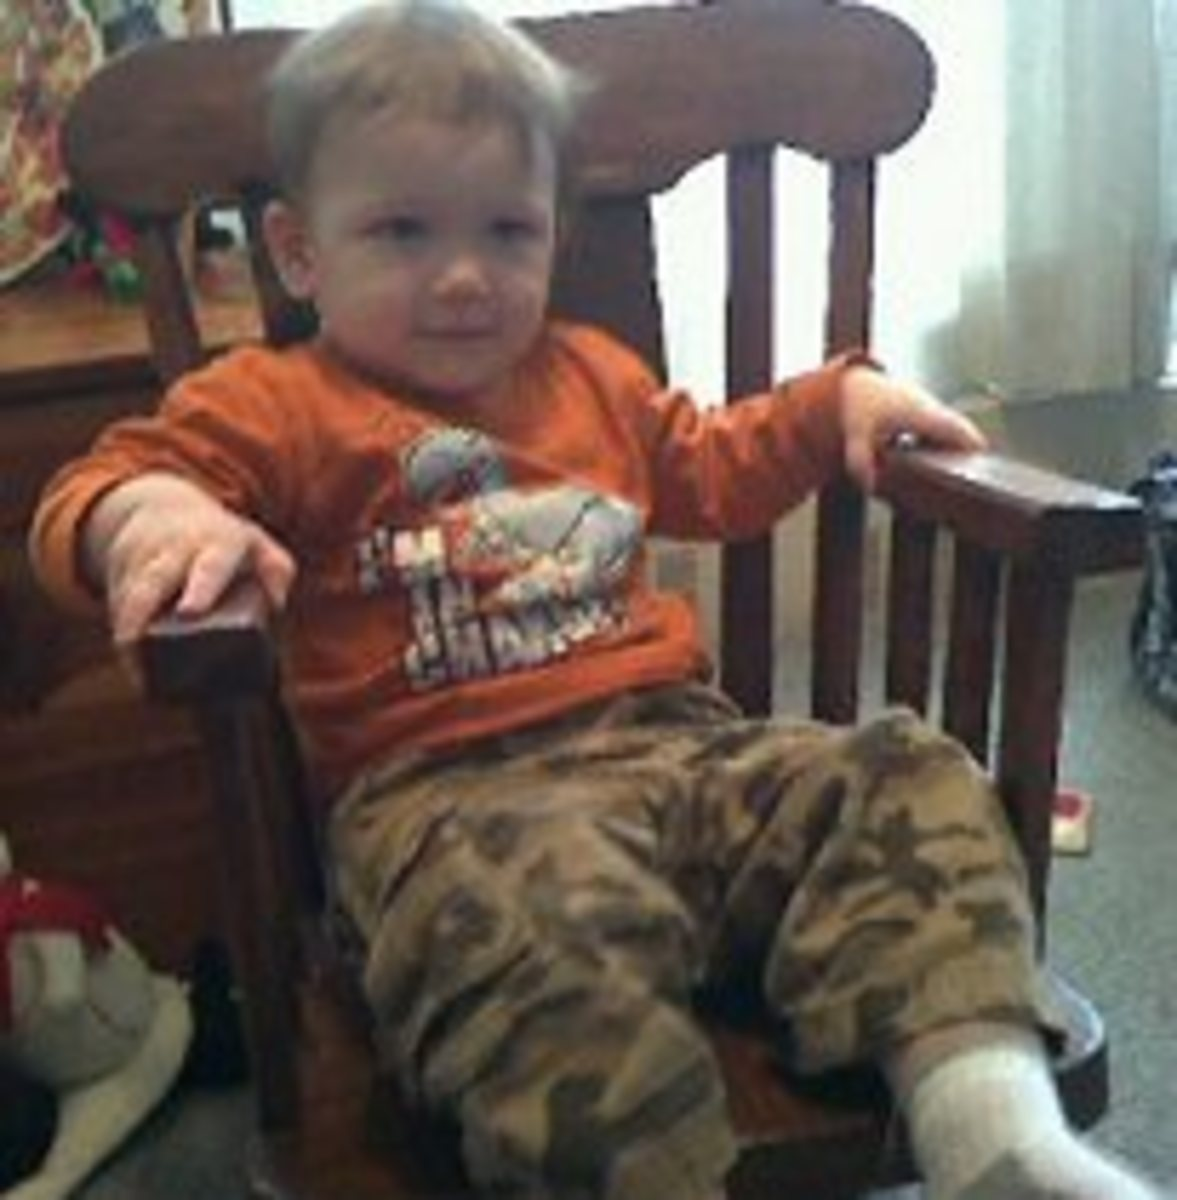 Do you or did you have a baby rocking chair?  Nursery rocking chairs and children's rocking chairs are very popular.